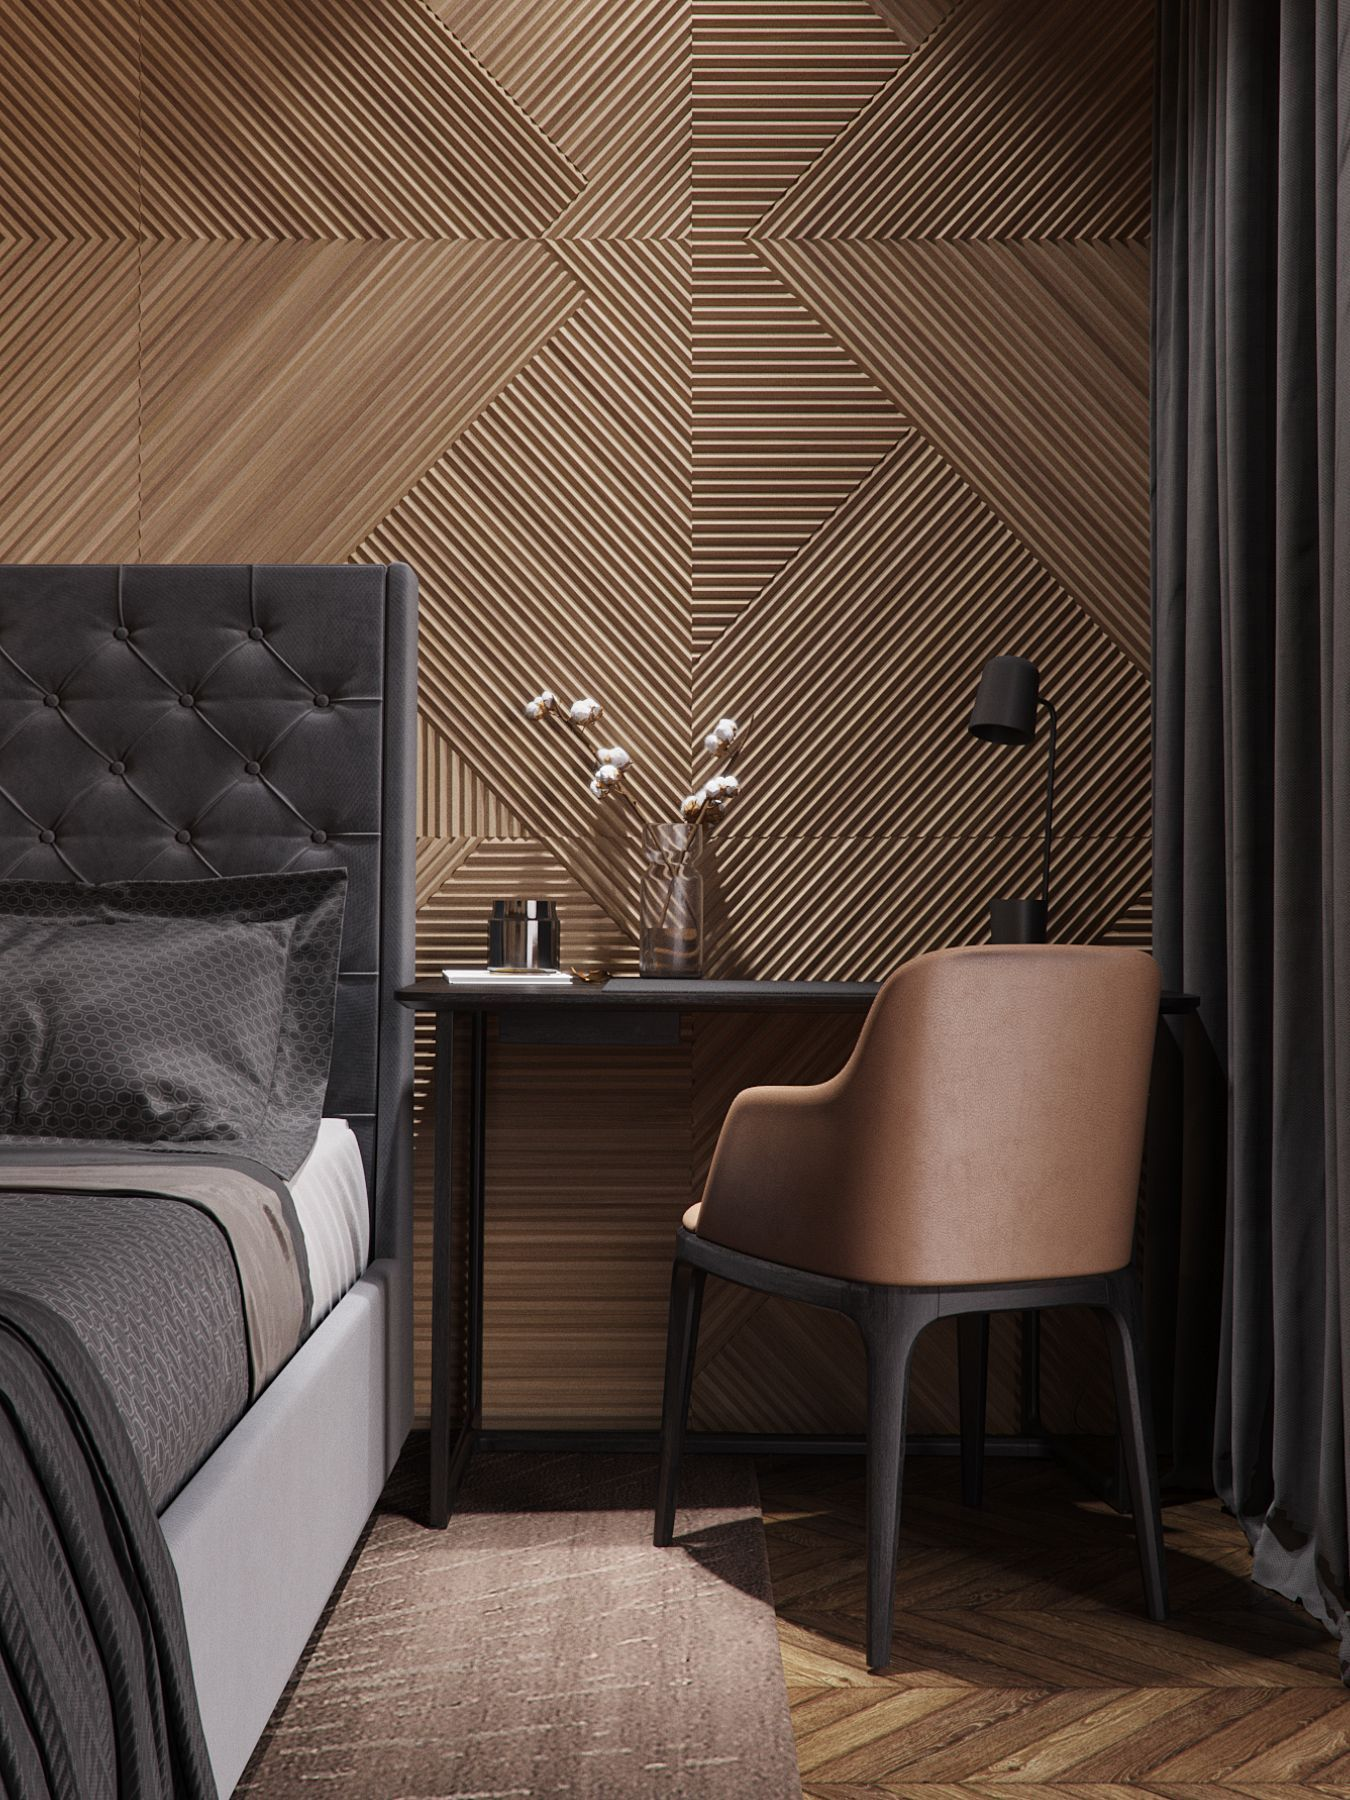 Hotel Room Wall: 25 Accent Wall Ideas You'll Surely Wish To Try This At